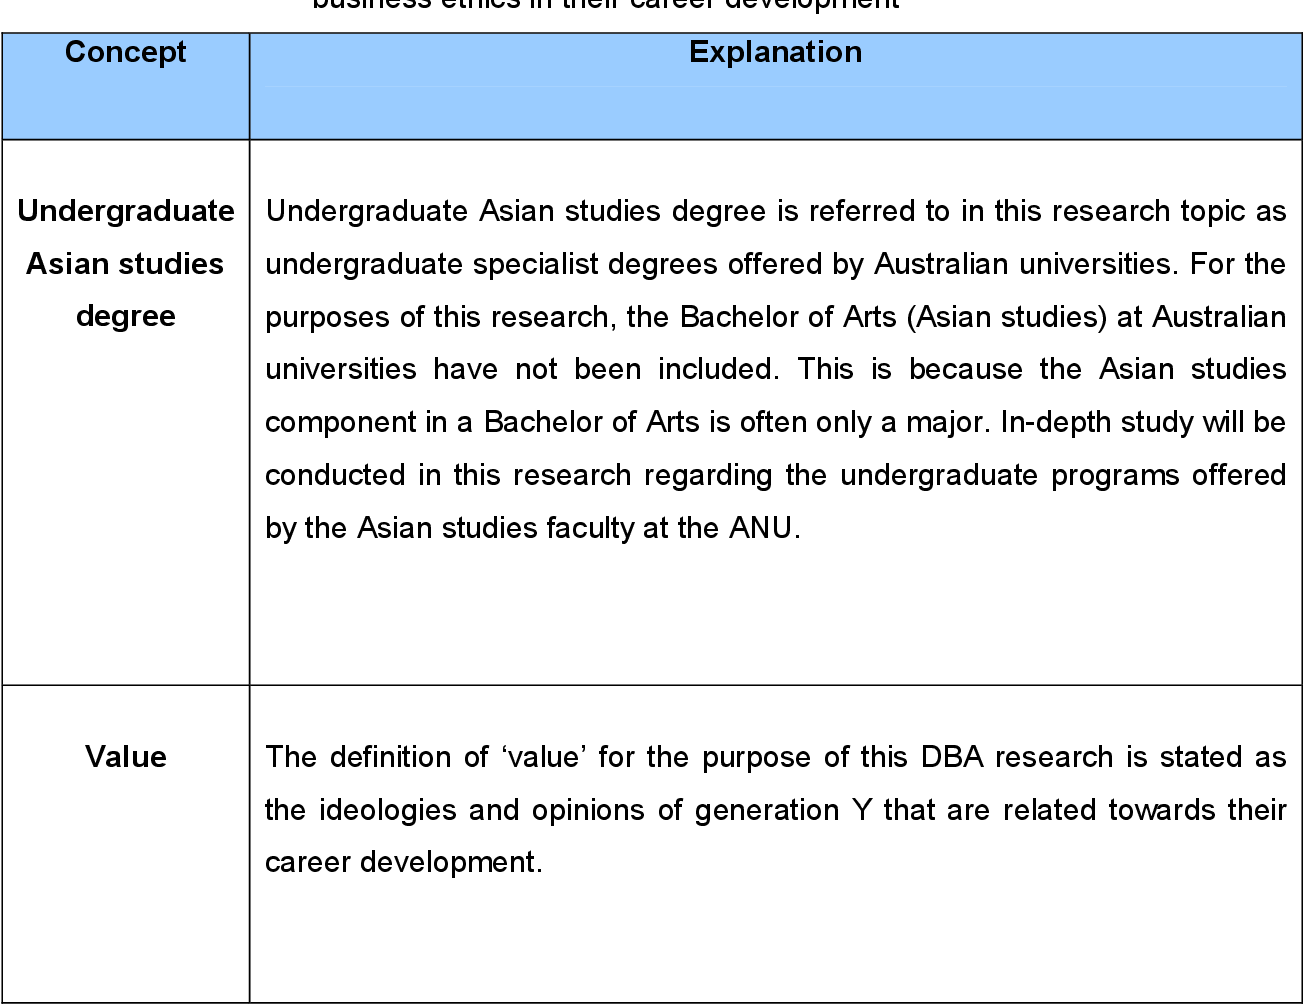 Human Capital Management Asian Studies And Generation Y S Value Of